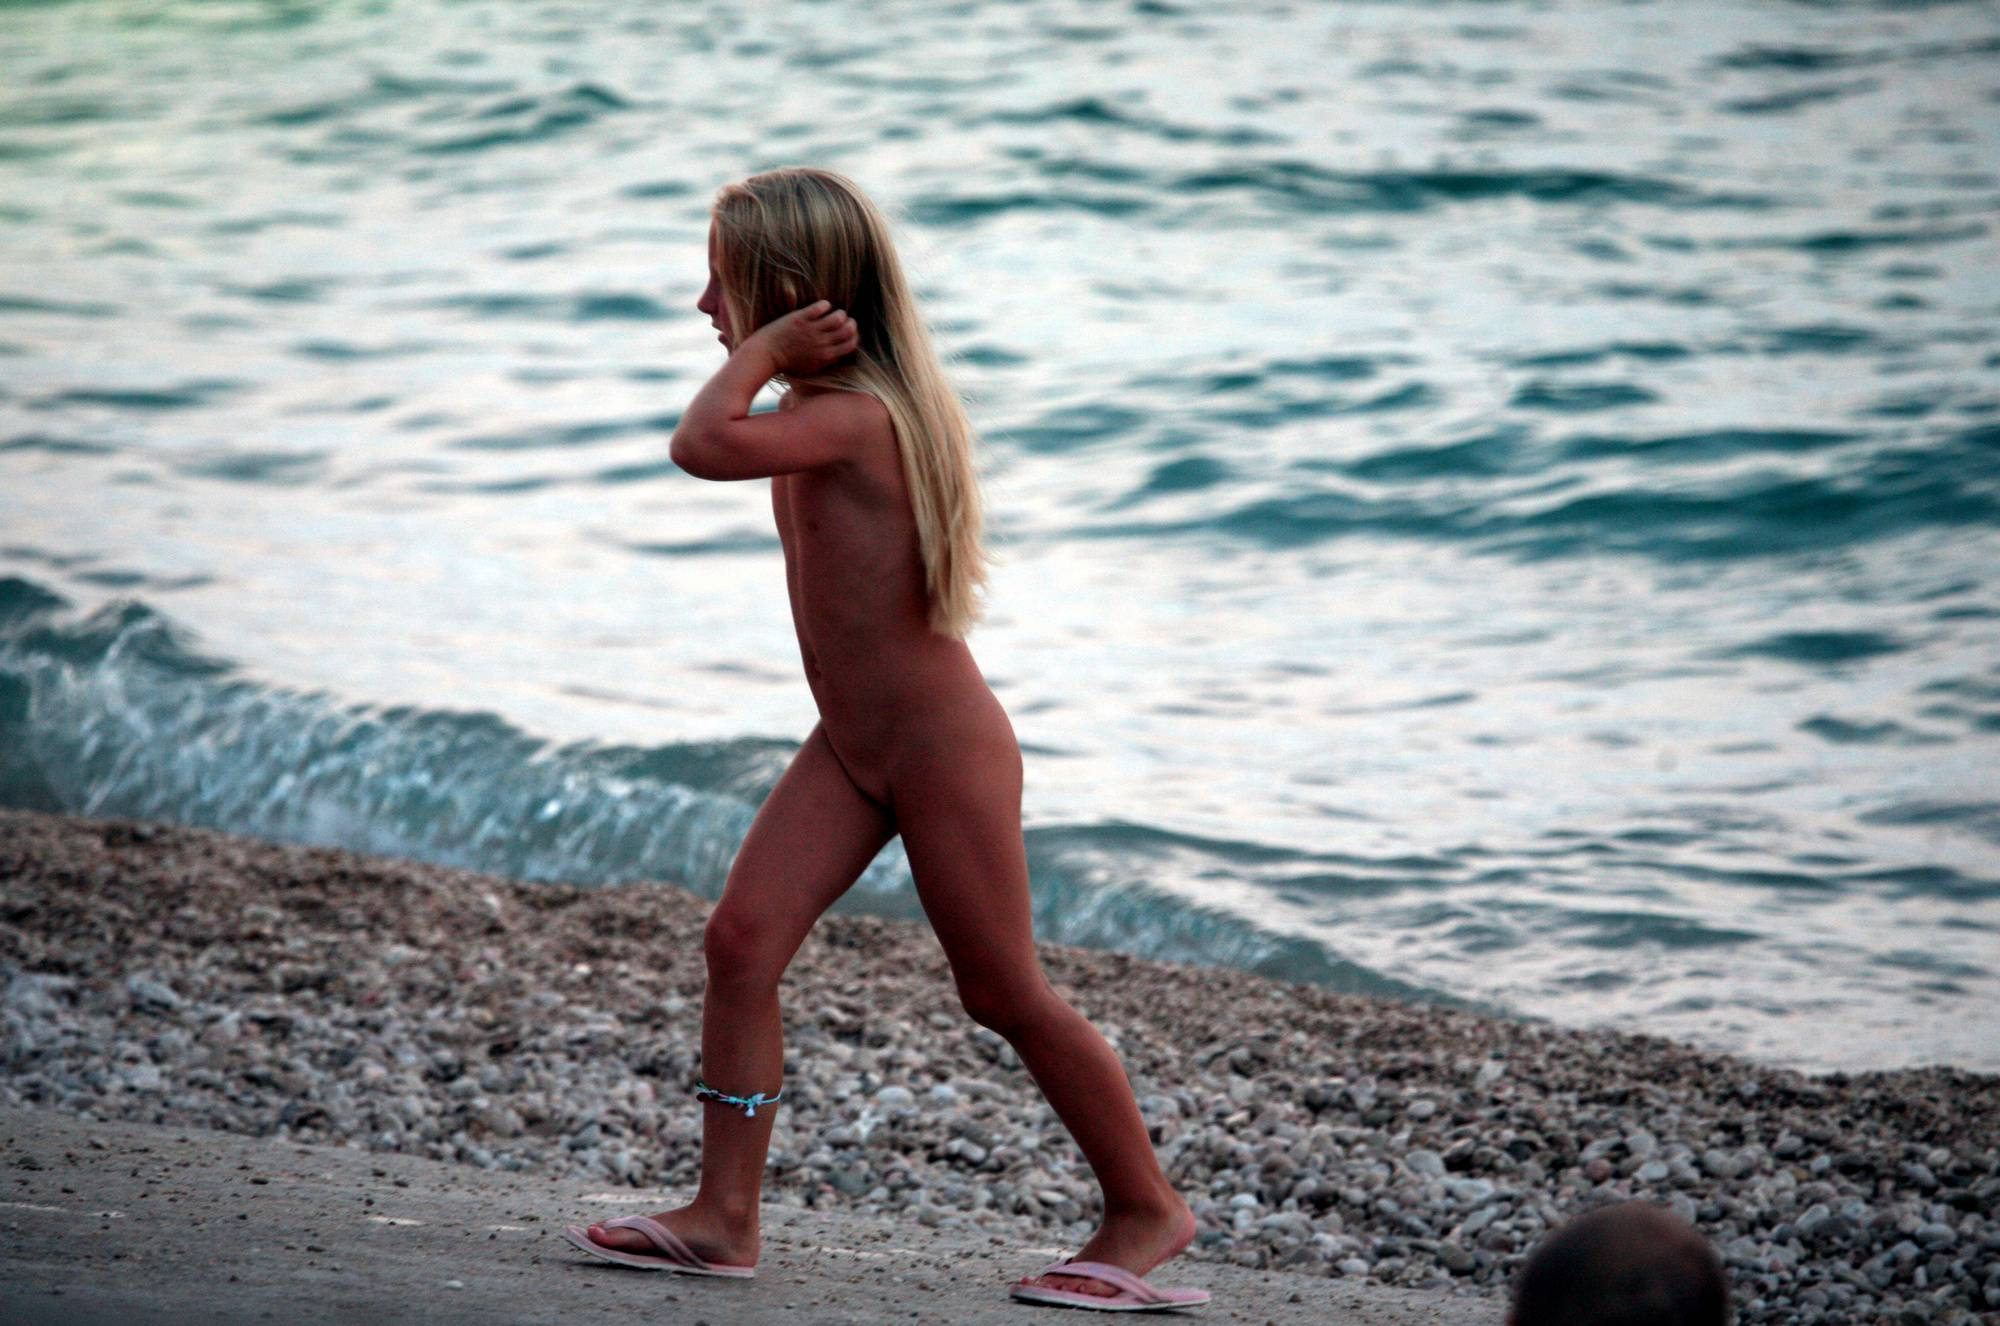 Naturist Blonde By Water - 2